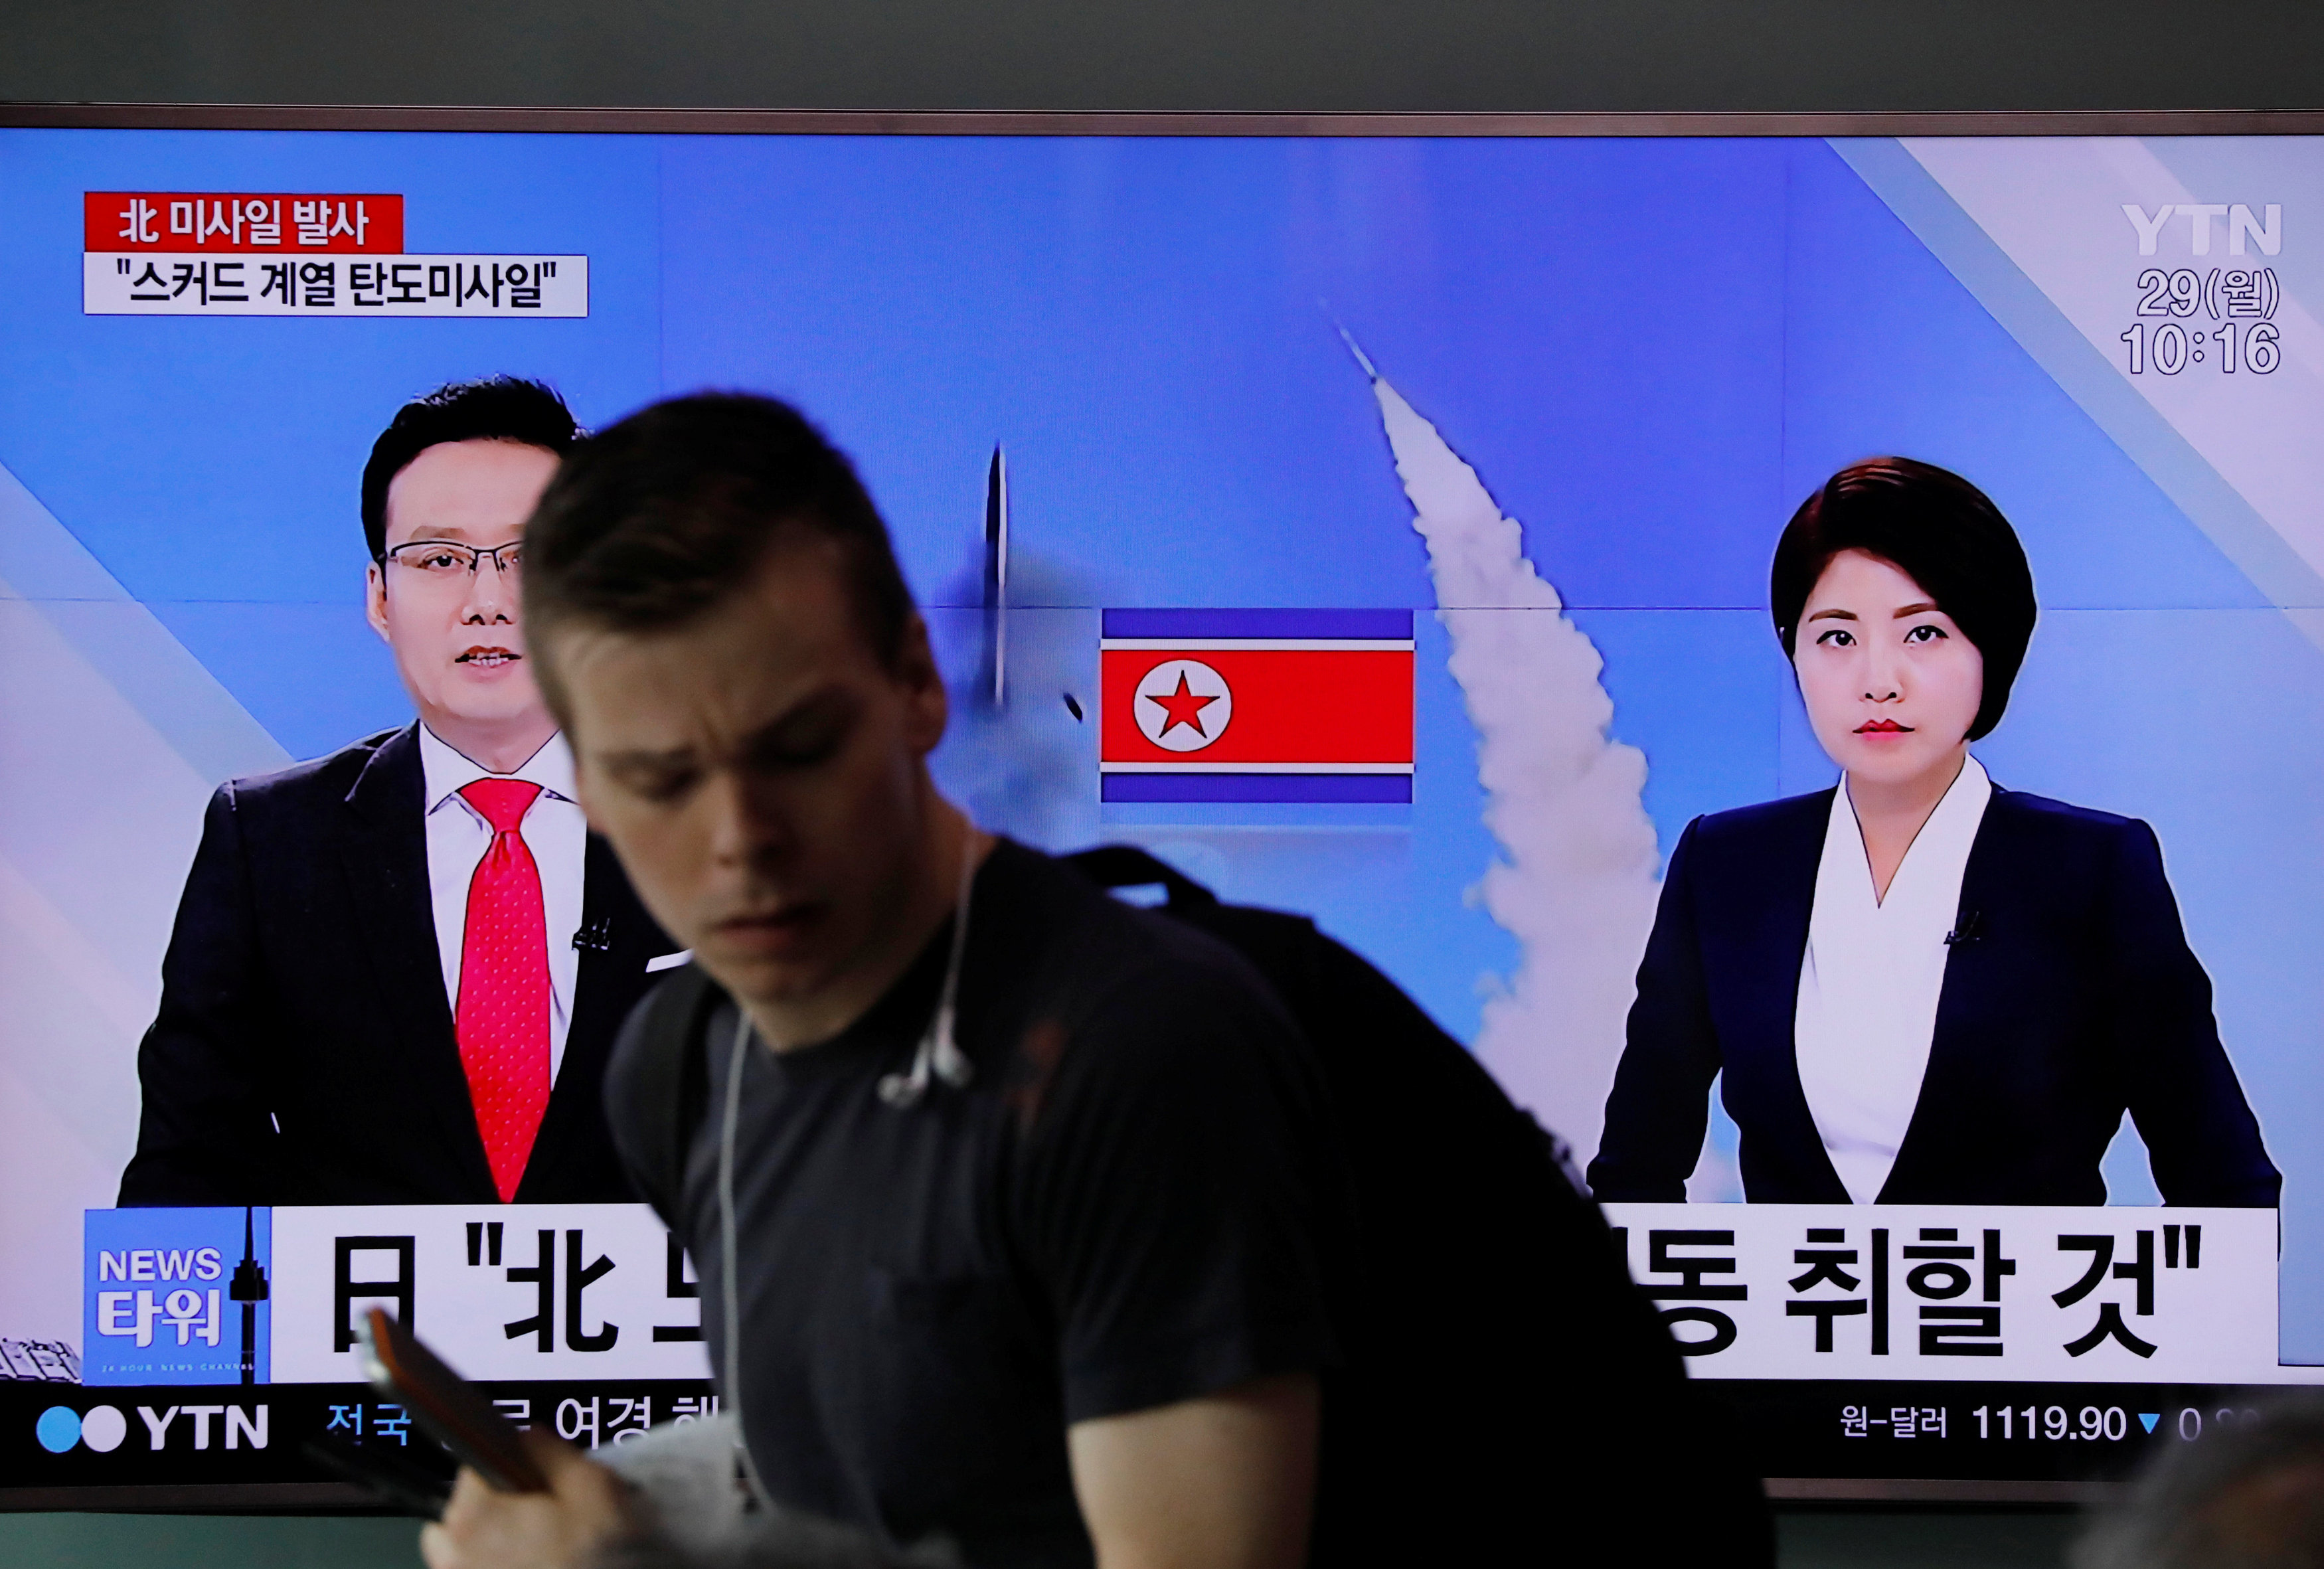 People watch a television broadcasting a news report on North Korea firing what appeared to be a short-range ballistic missile, at a railway station in Seoul, South Korea on May 29, 2017. (REUTERS/Kim Hong-Ji)